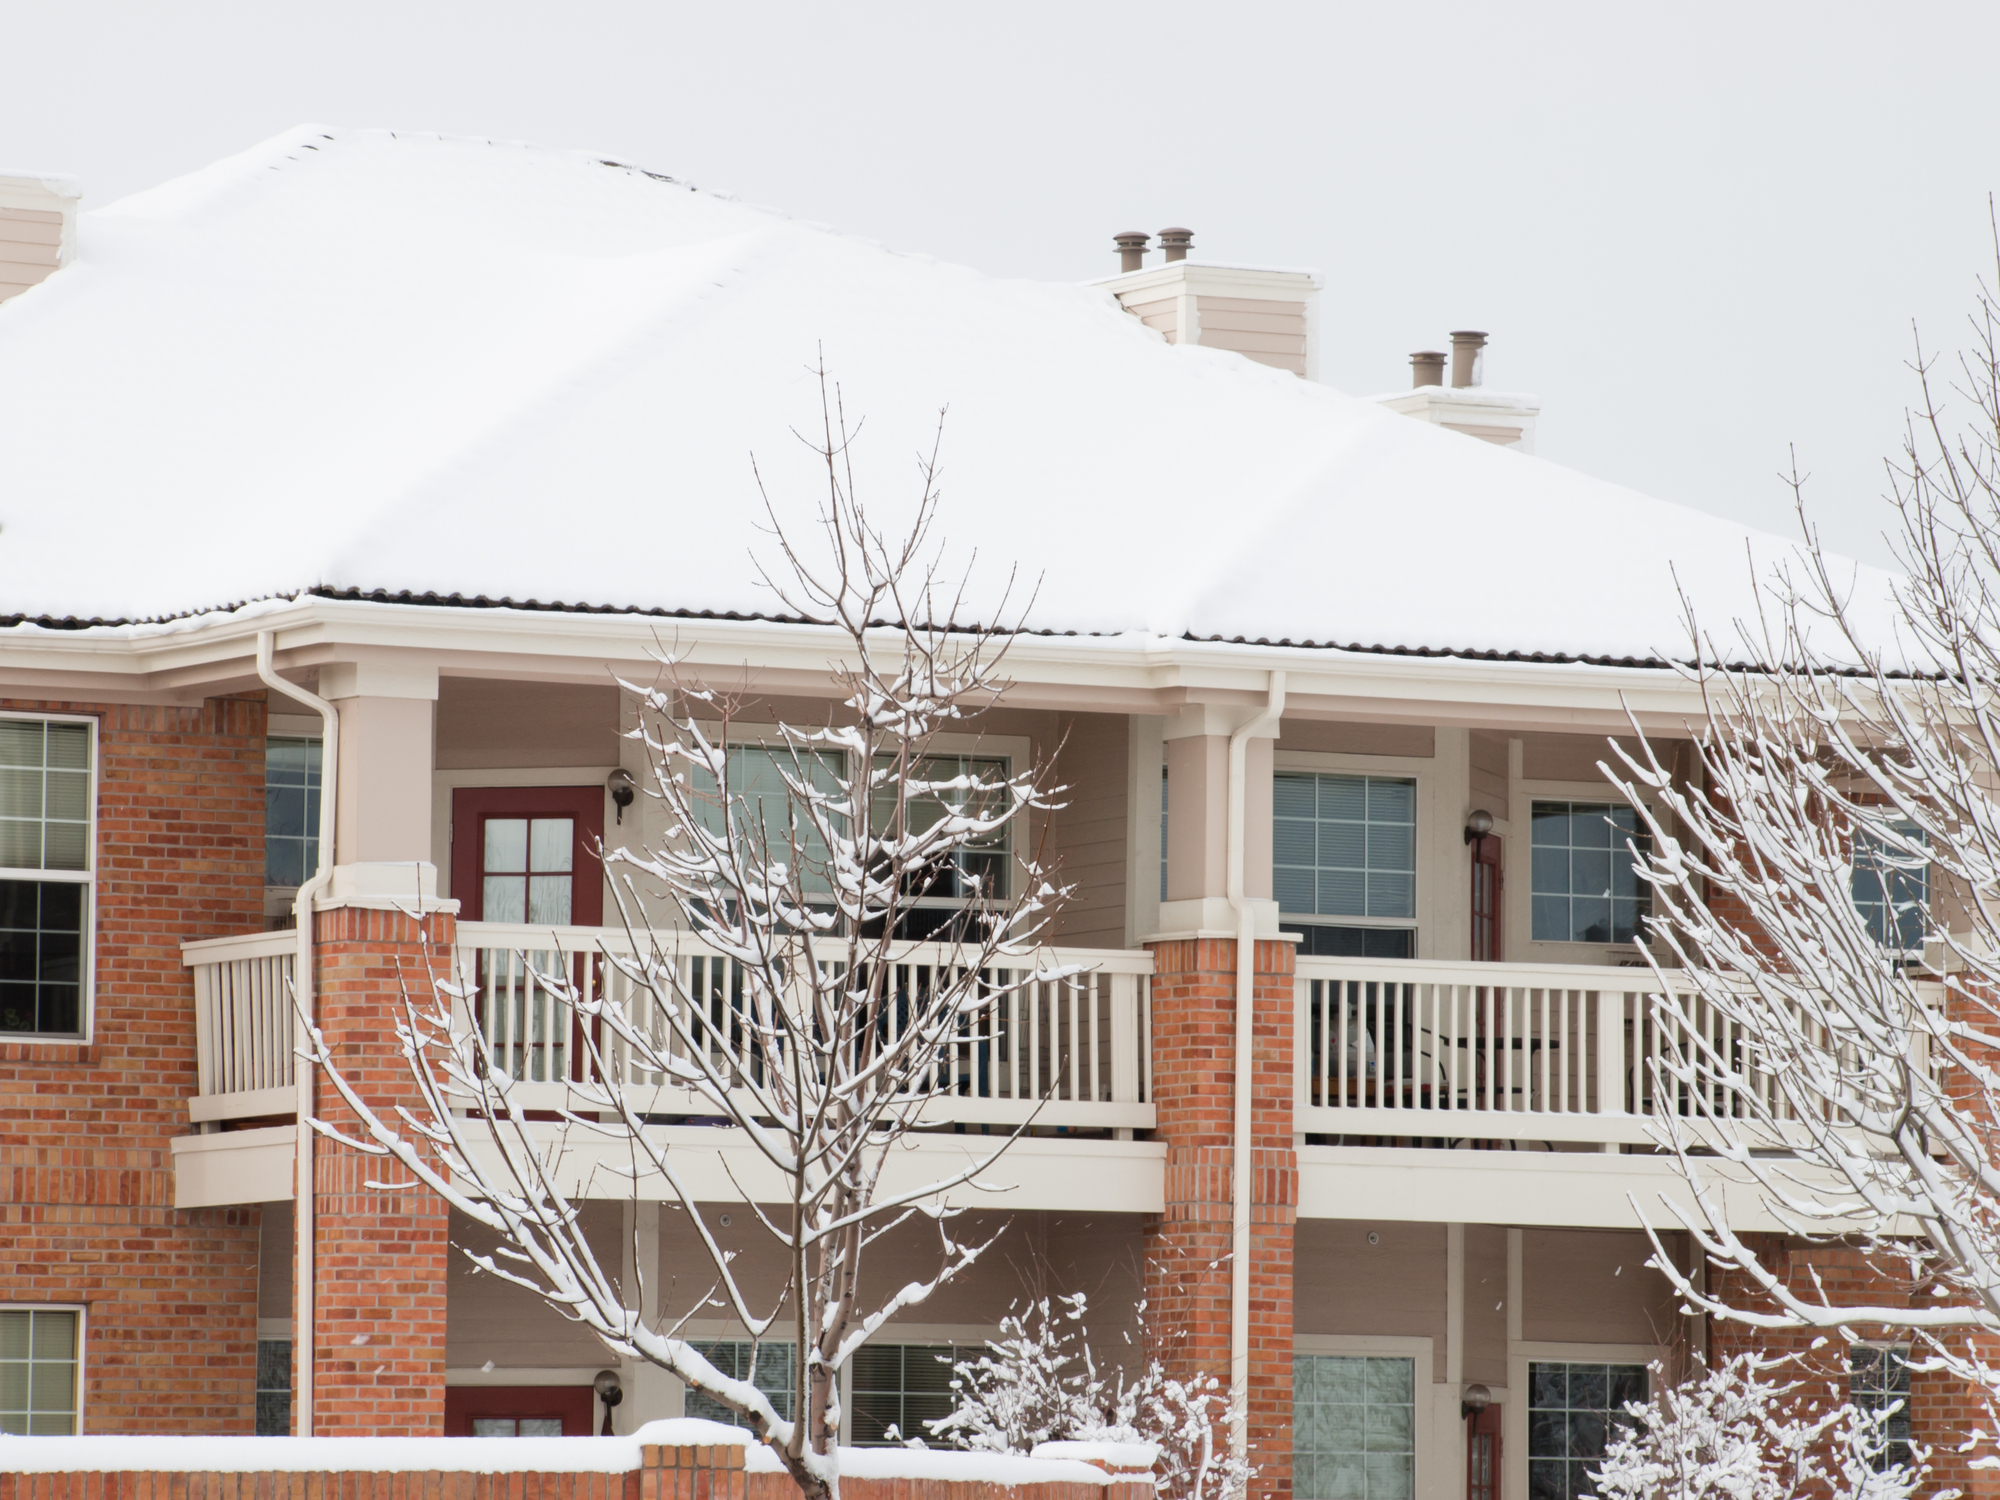 Snow Covered Apartment Building Seeking Rental Property Tenants In Winter